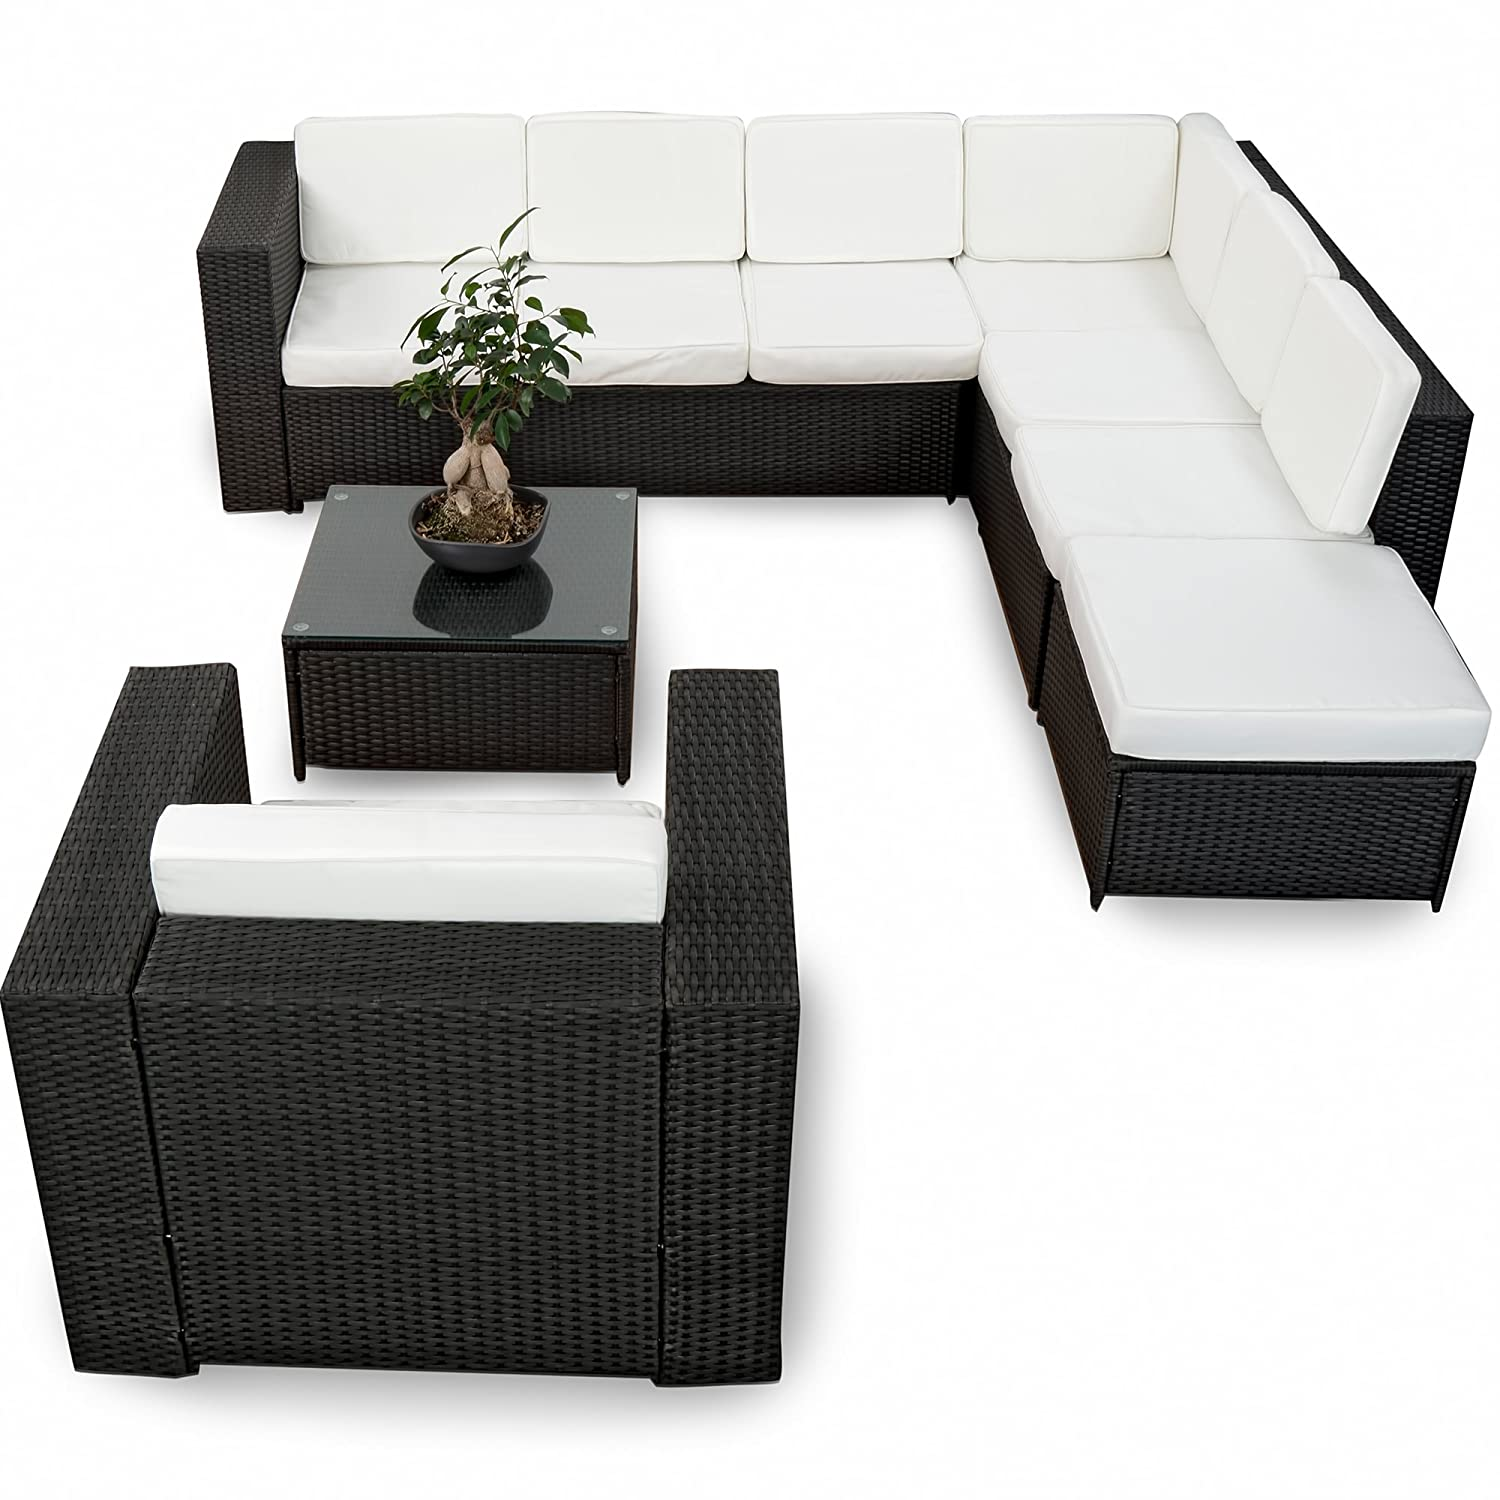 xinro xxl 22tlg gartenm bel lounge set g nstig 1x 1er lounge sessel lounge m bel. Black Bedroom Furniture Sets. Home Design Ideas